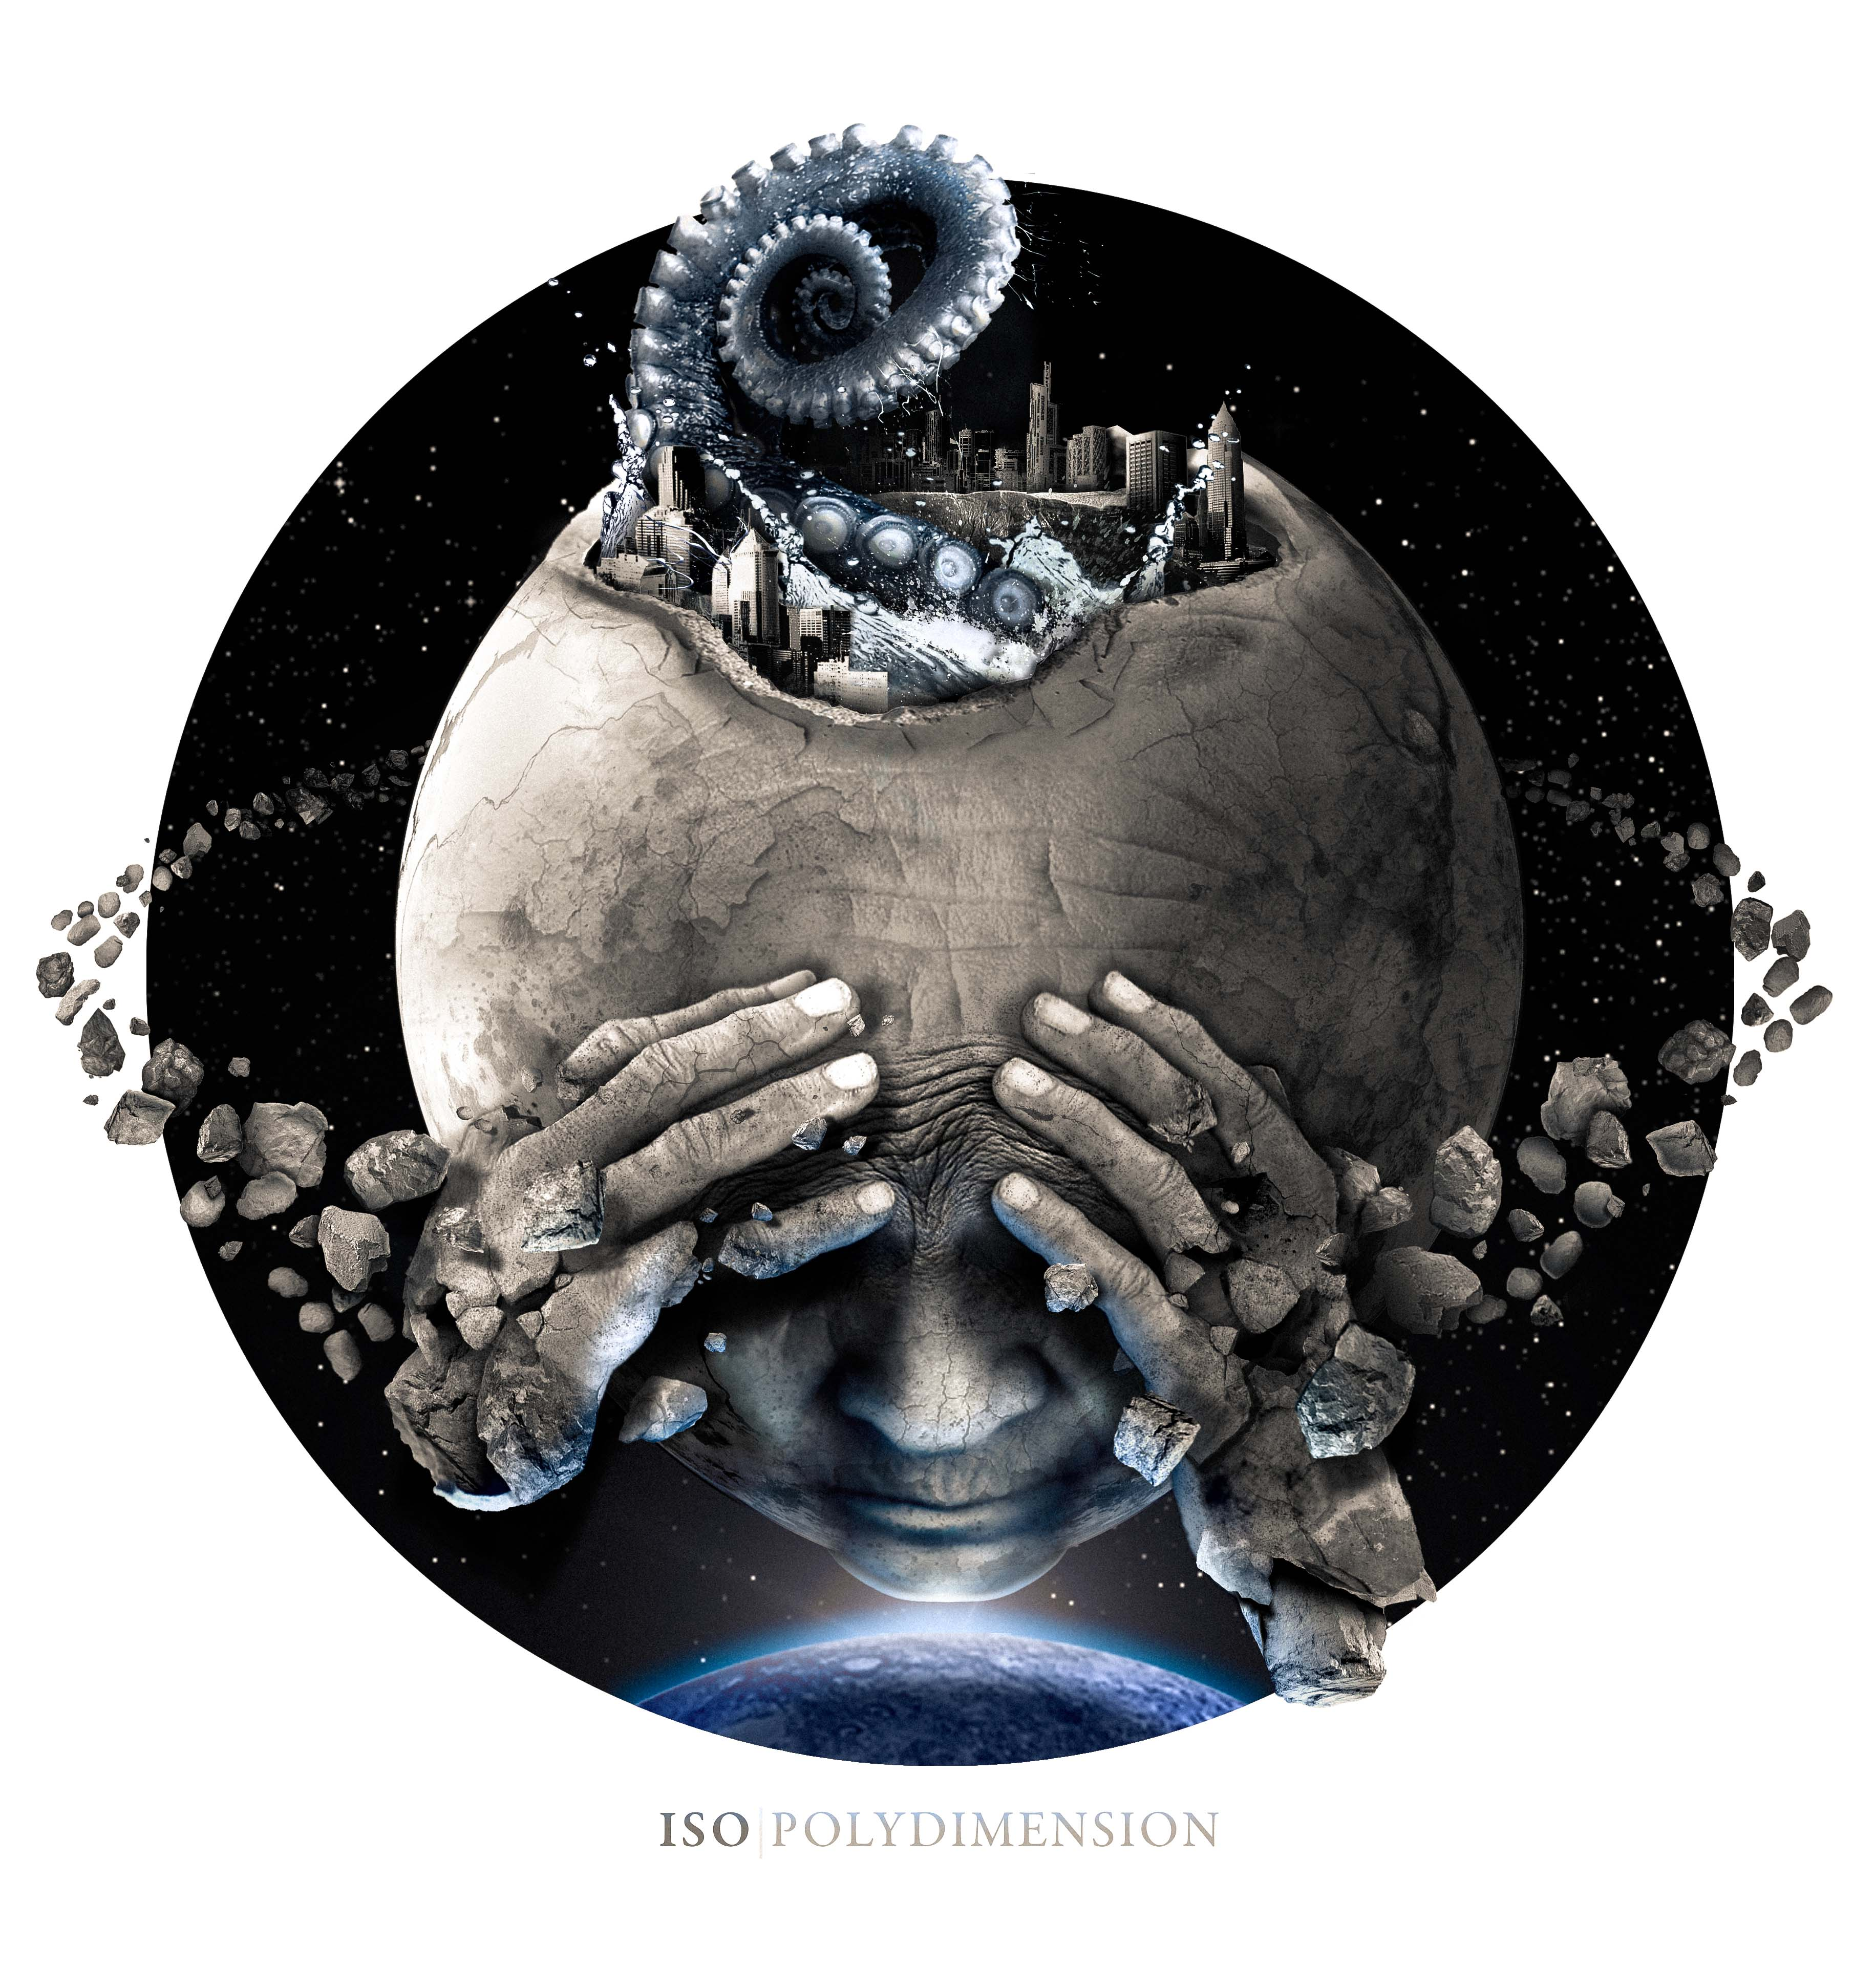 ALBUM REVIEW: ISO – Polydimension